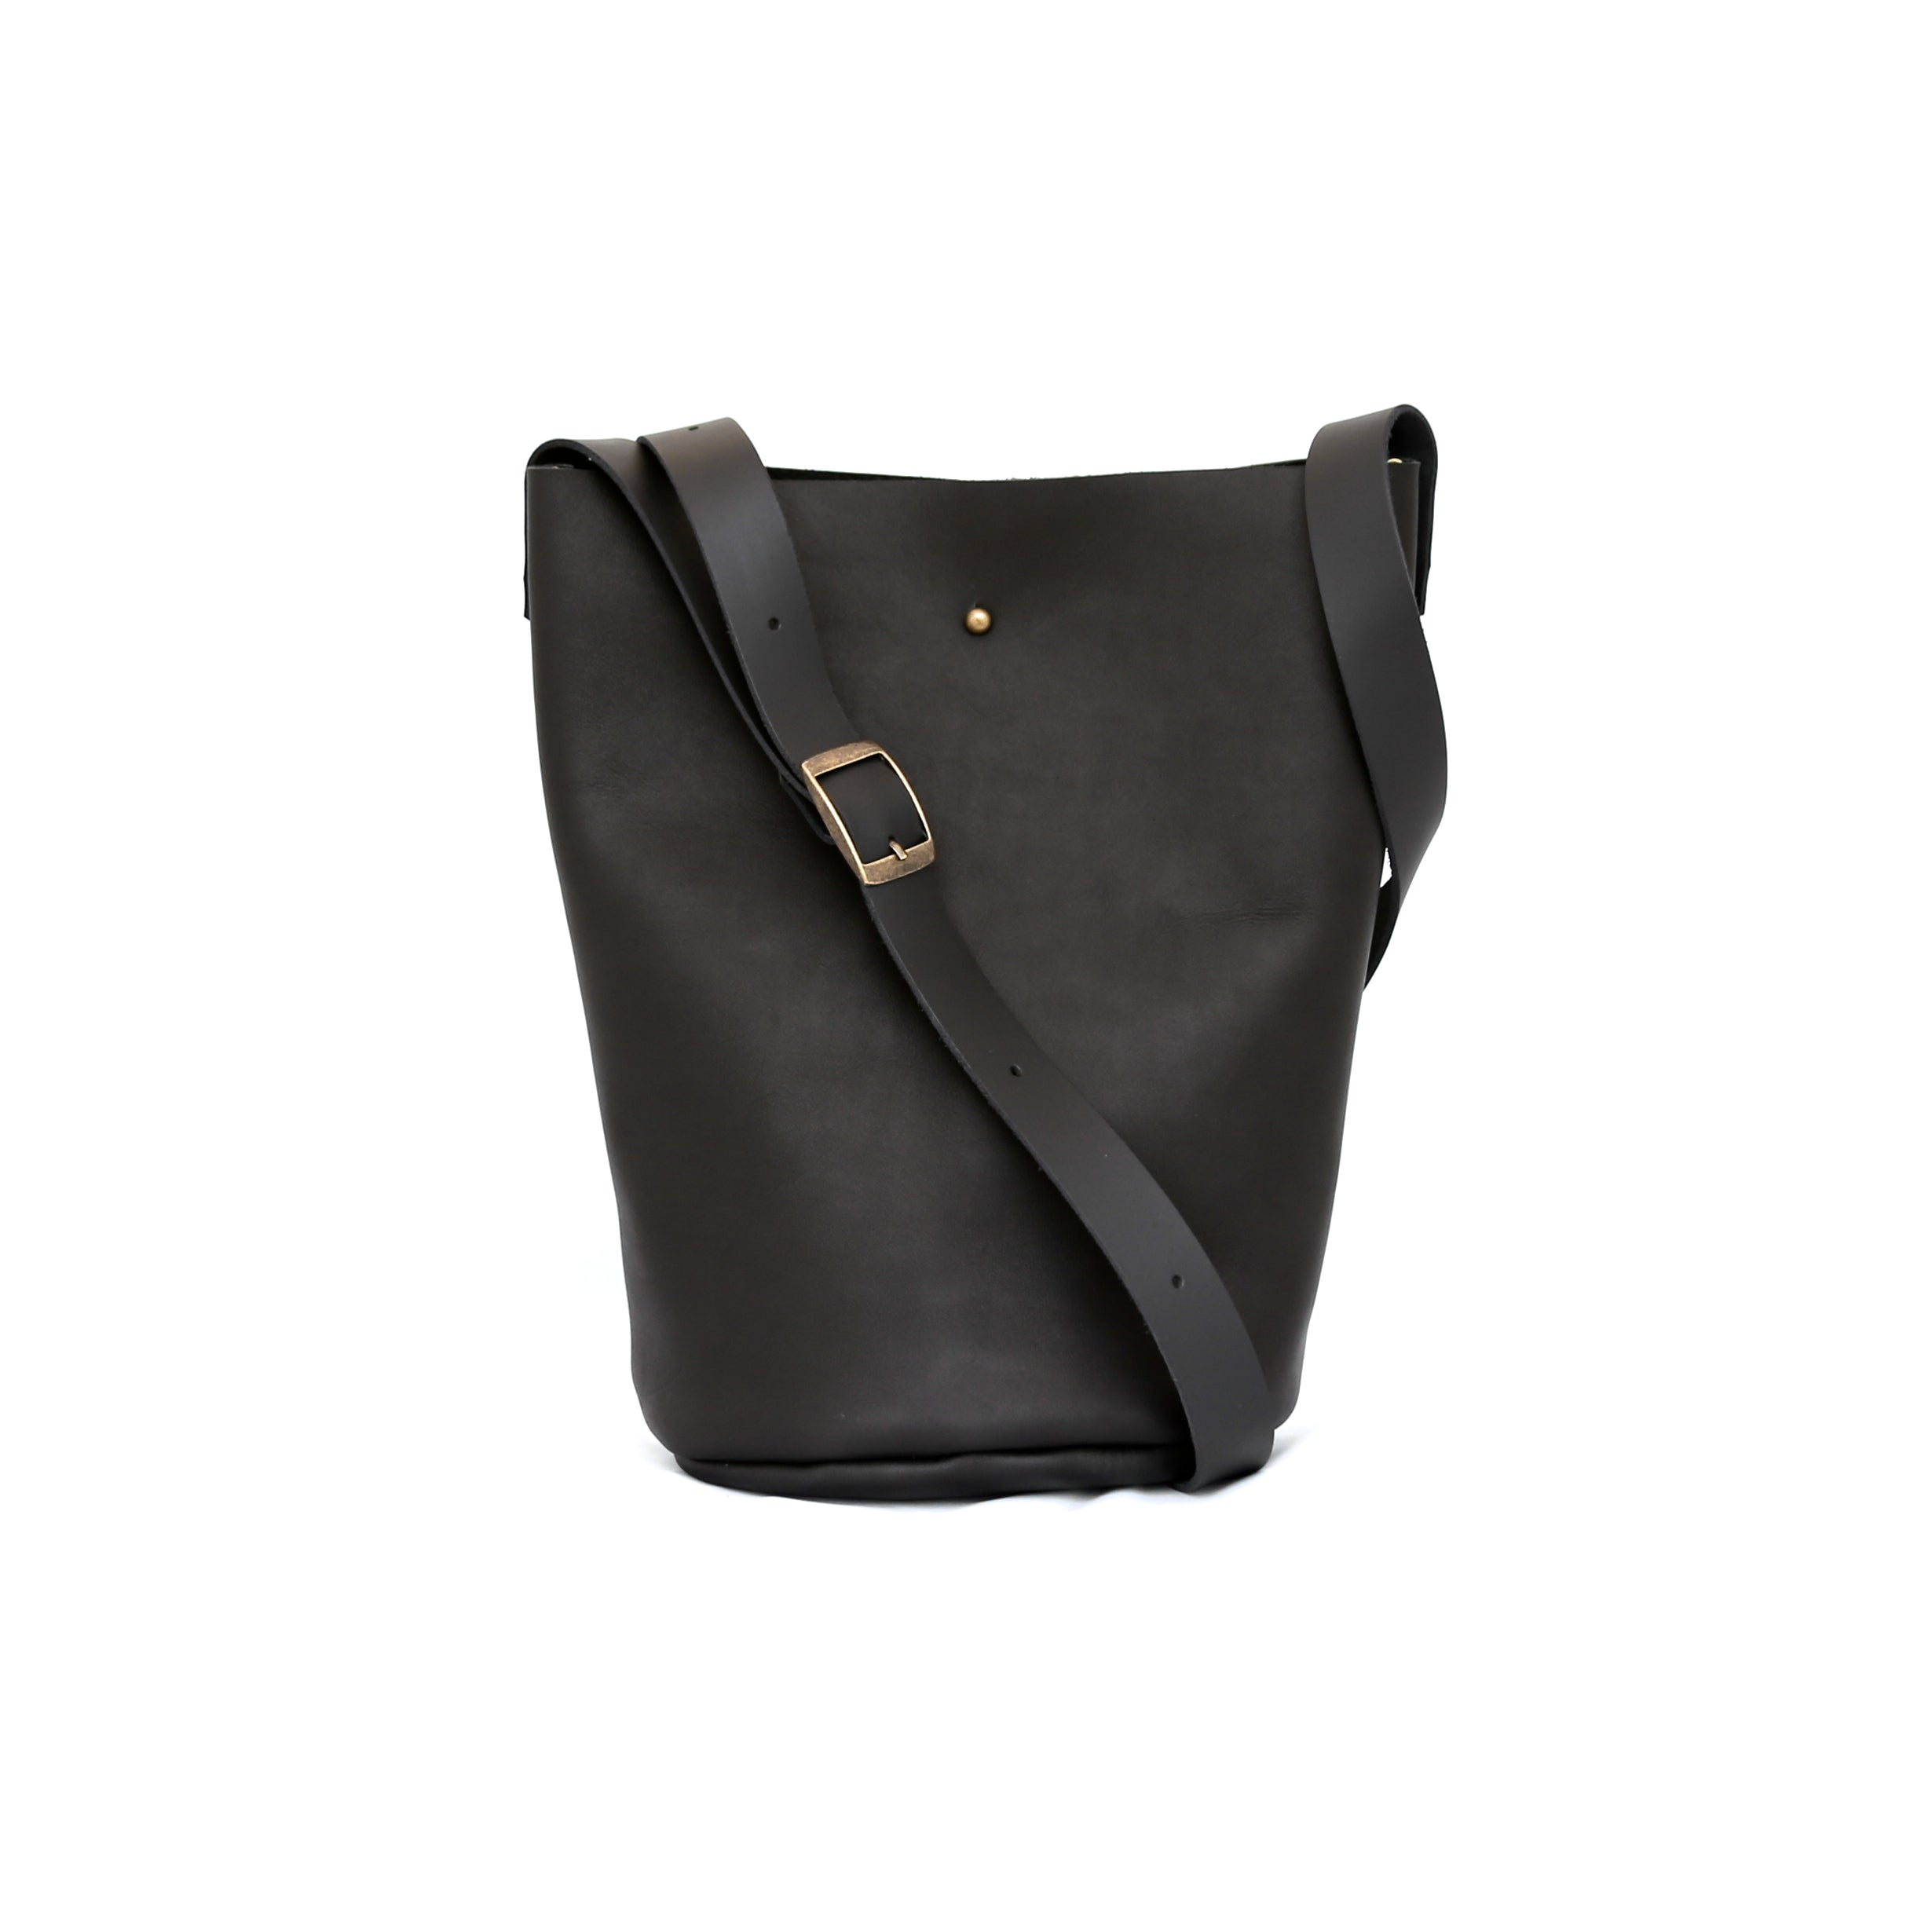 Bucket Bag In Matte Black Leather - handcrafted by Market Canvas Leather in Tofino, BC, Canada